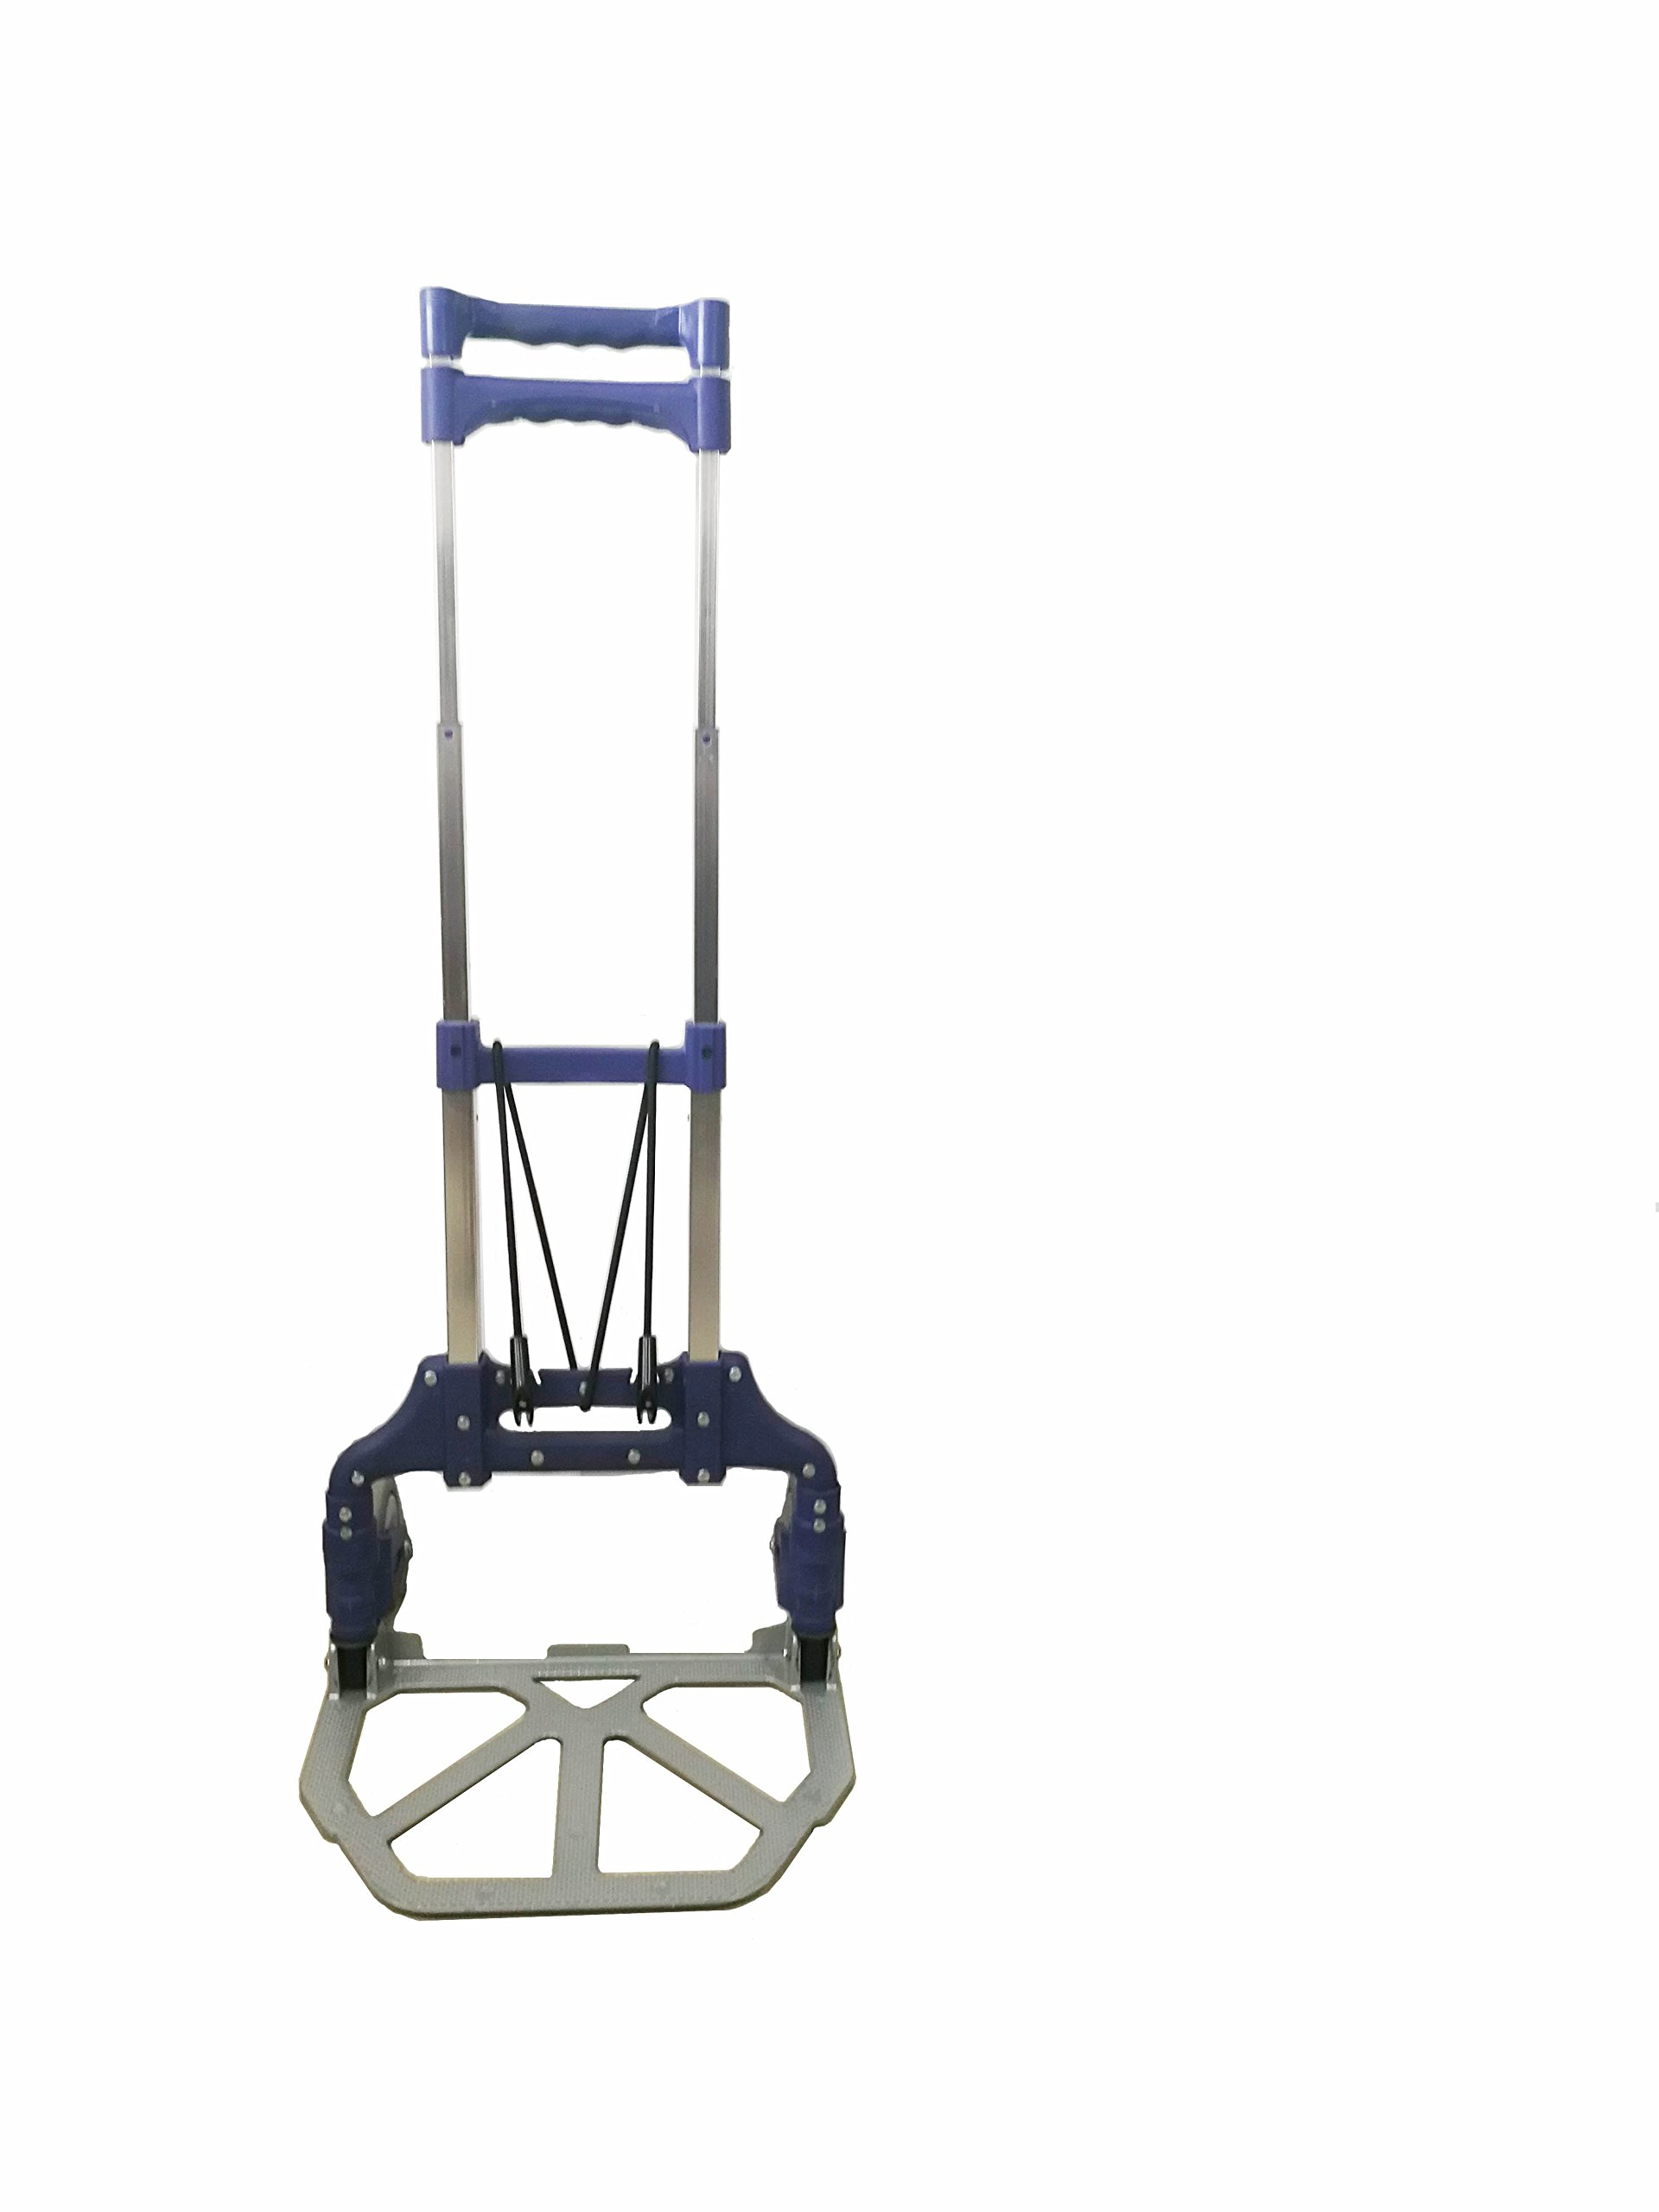 Portable Foldable Luggage Hand Cart Capacity 150Lbs Color Blue